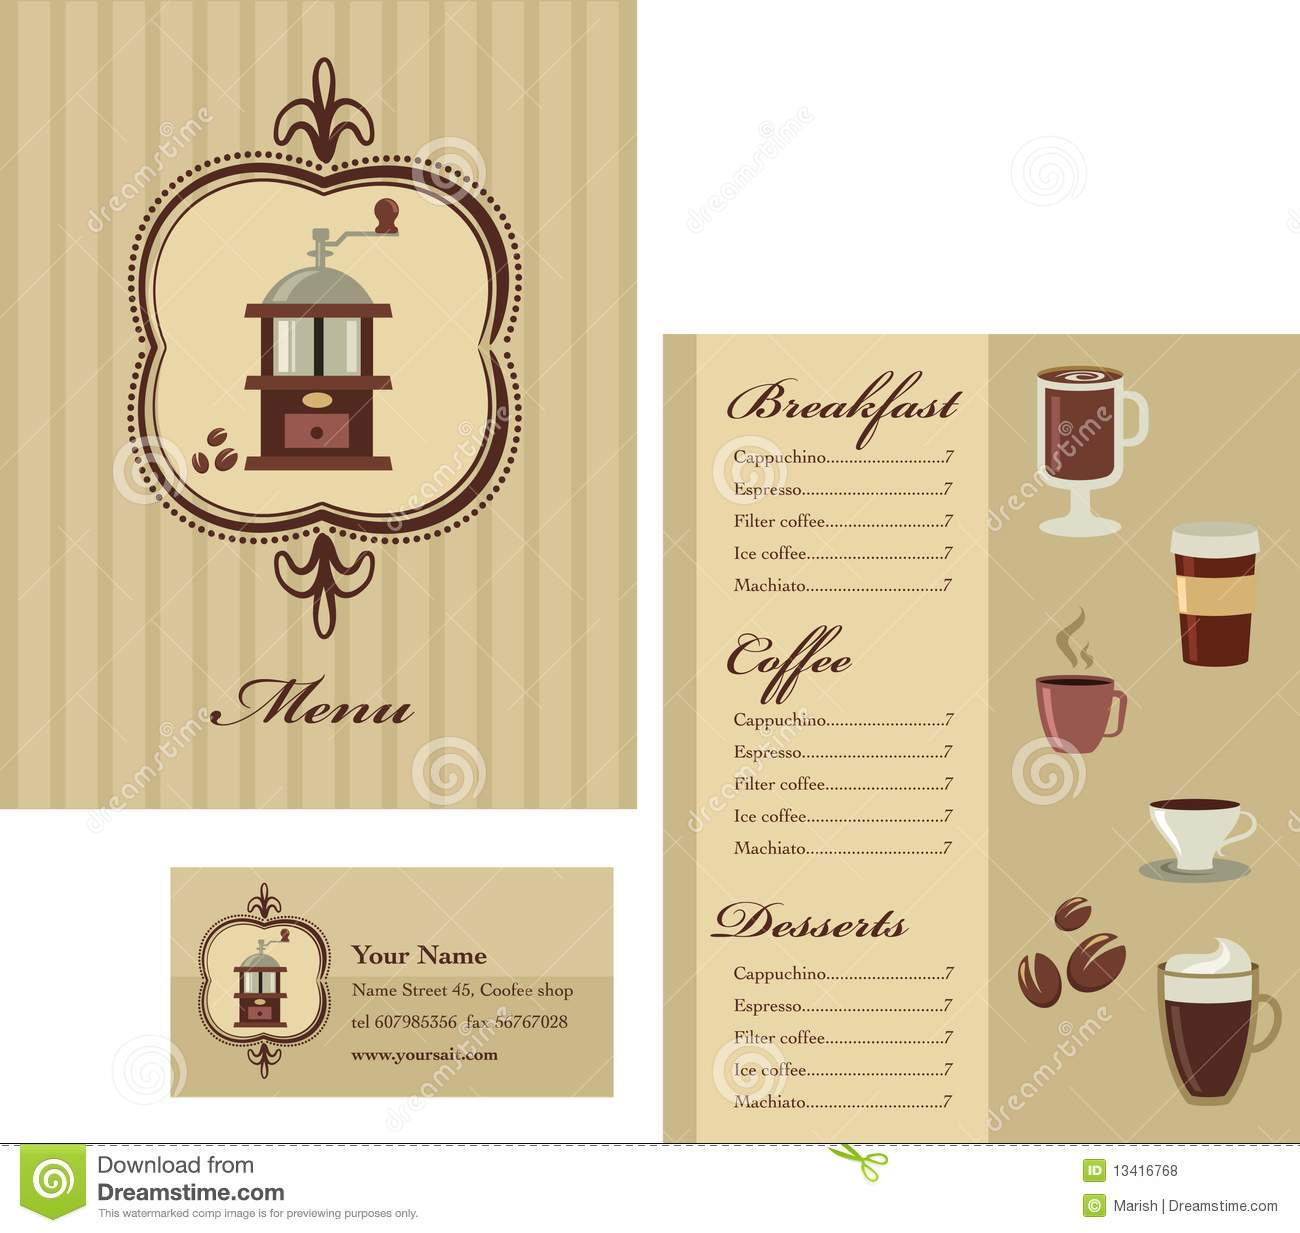 Coffee business card template stock vector illustration of menu and business card template design coffee royalty free illustration wajeb Choice Image